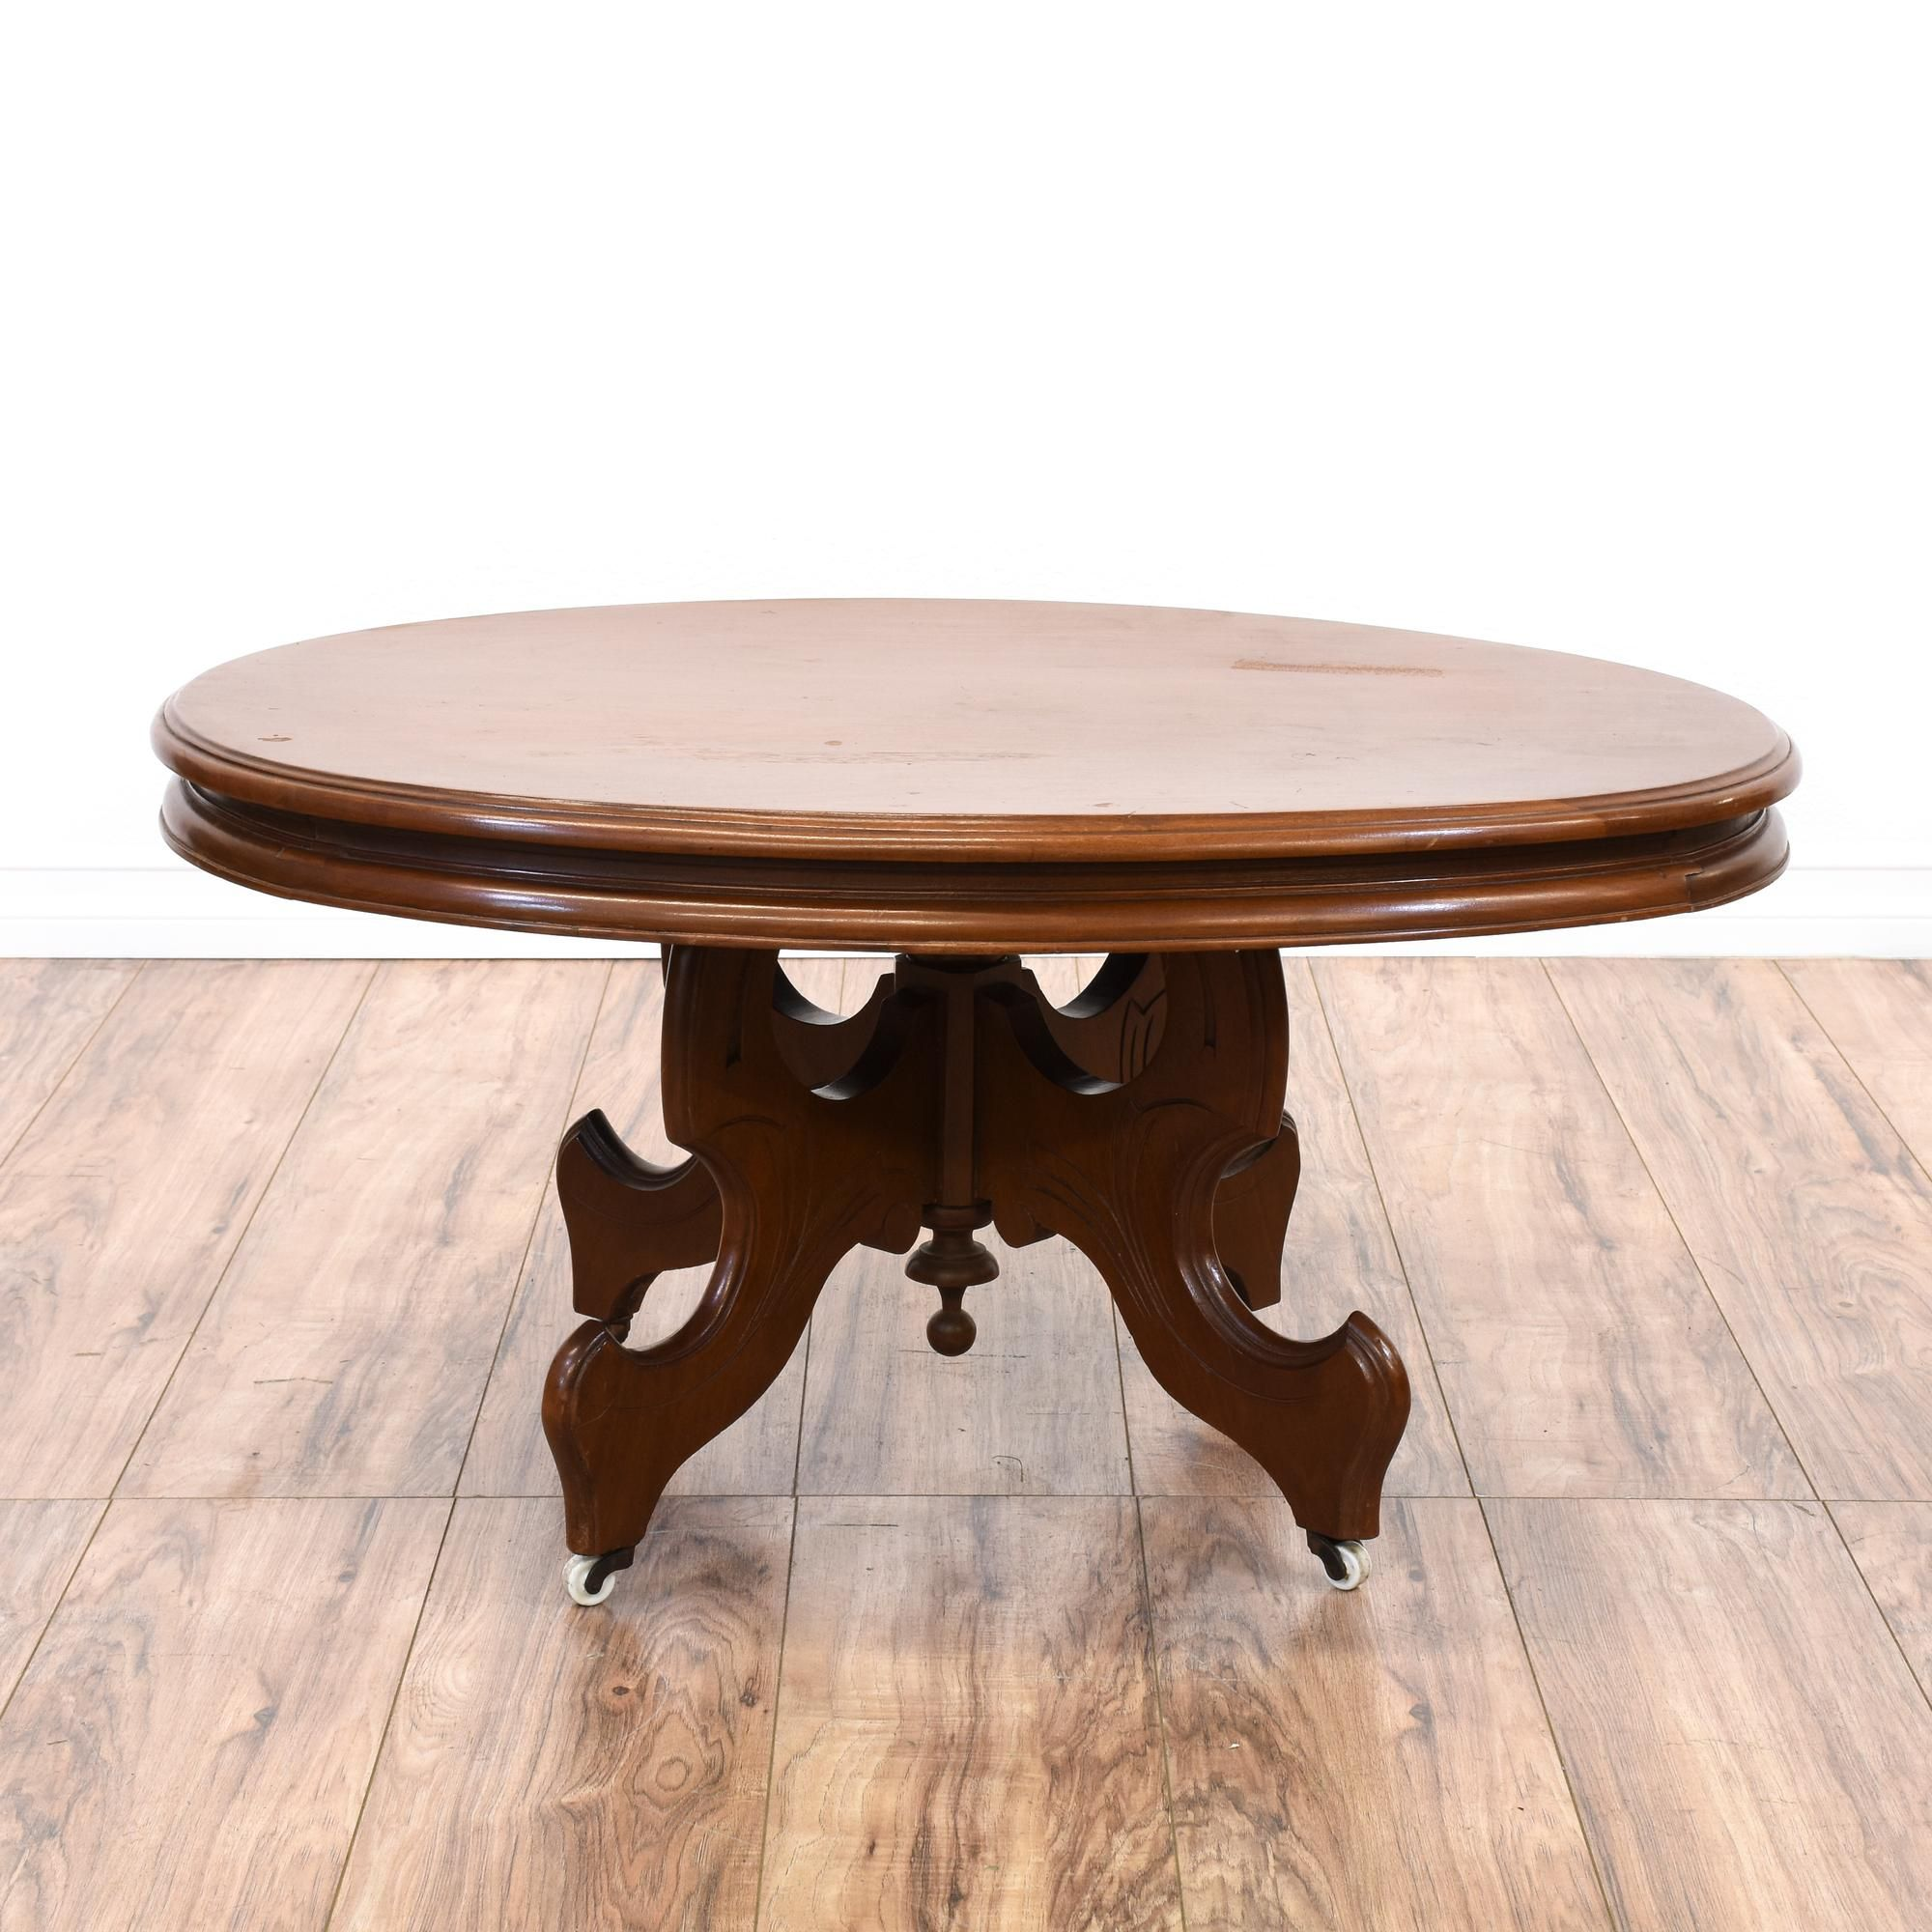 Oval Victorian Carved Cherry Coffee Table This victorian coffee